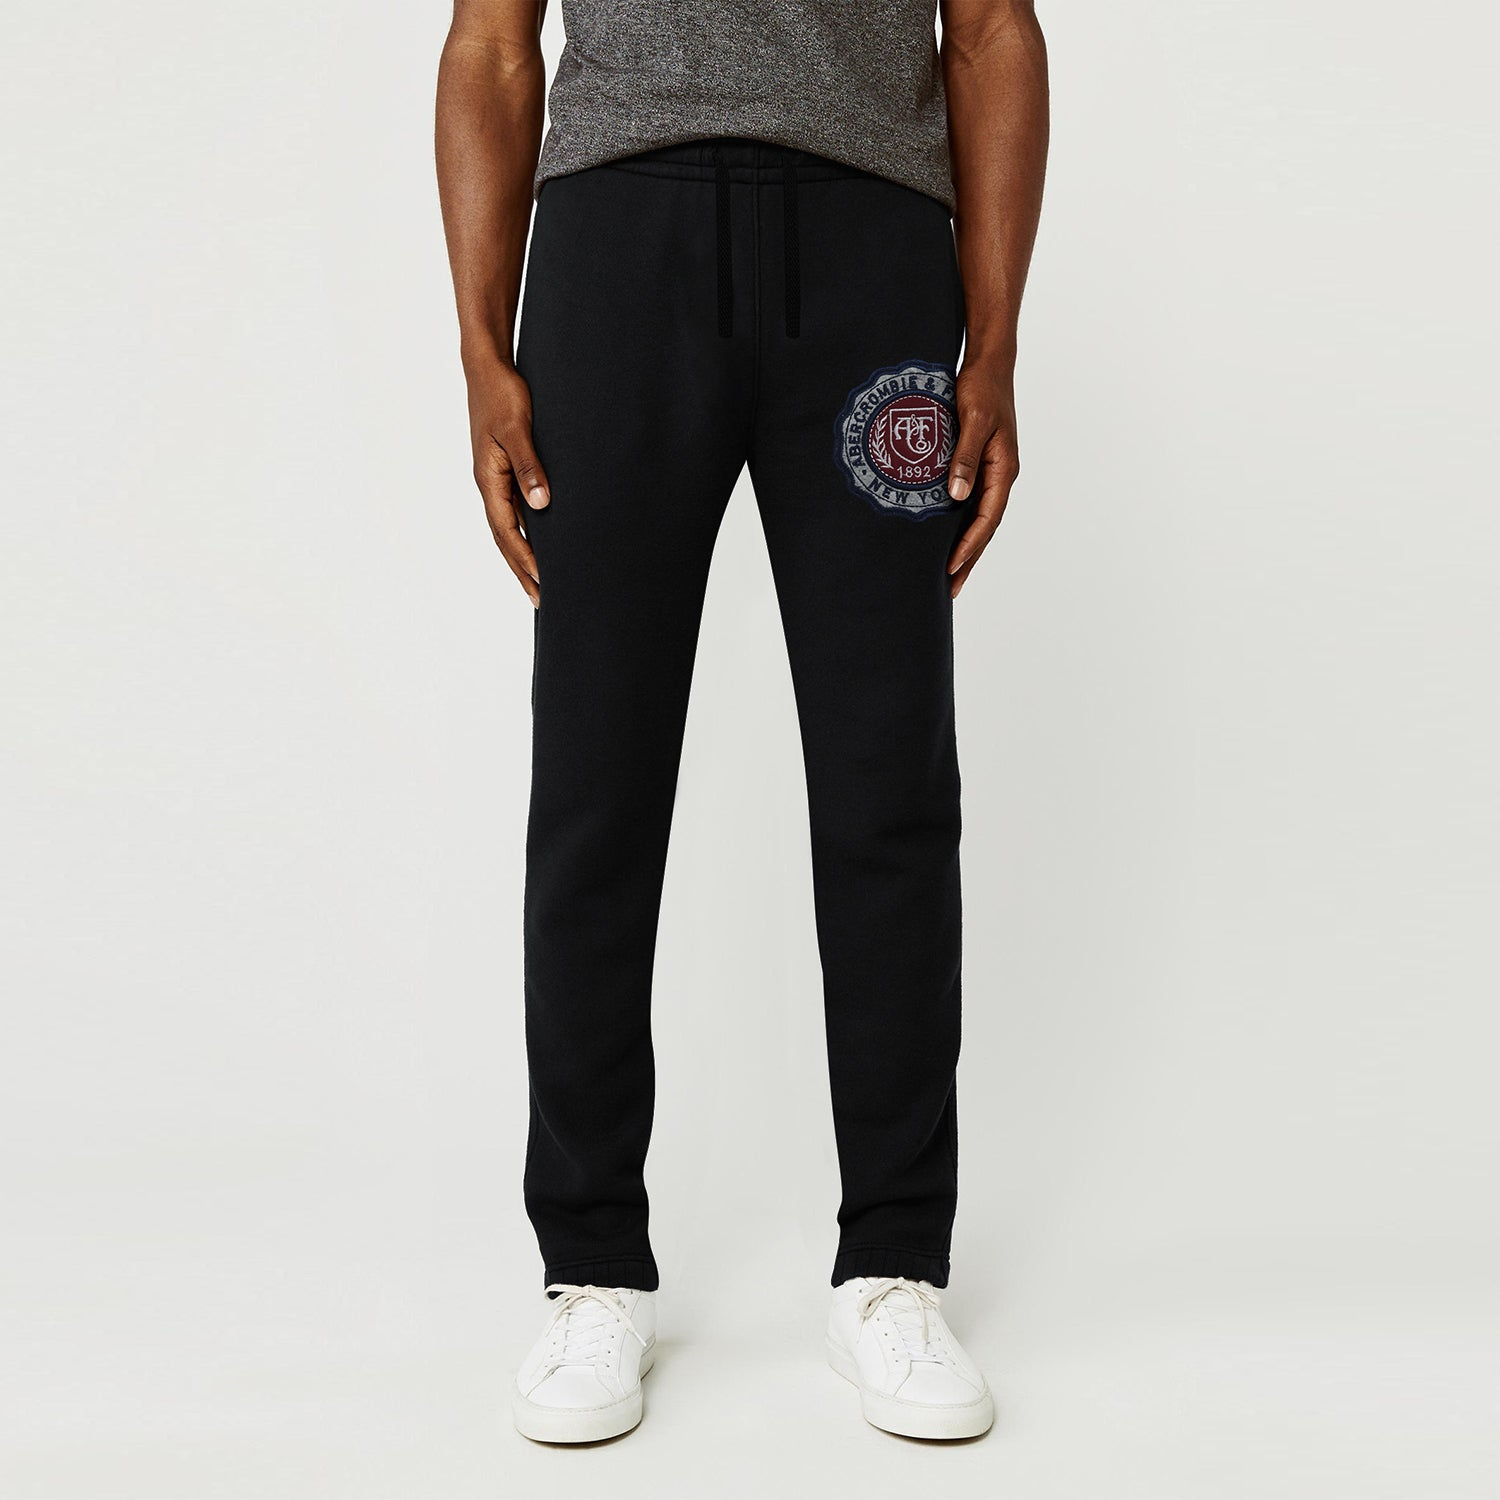 A&F Fleece Navy Grey & Maroon Embroidery Slim Fit Gathering Bottom Jogger Trouser For Men-Black-BE9719